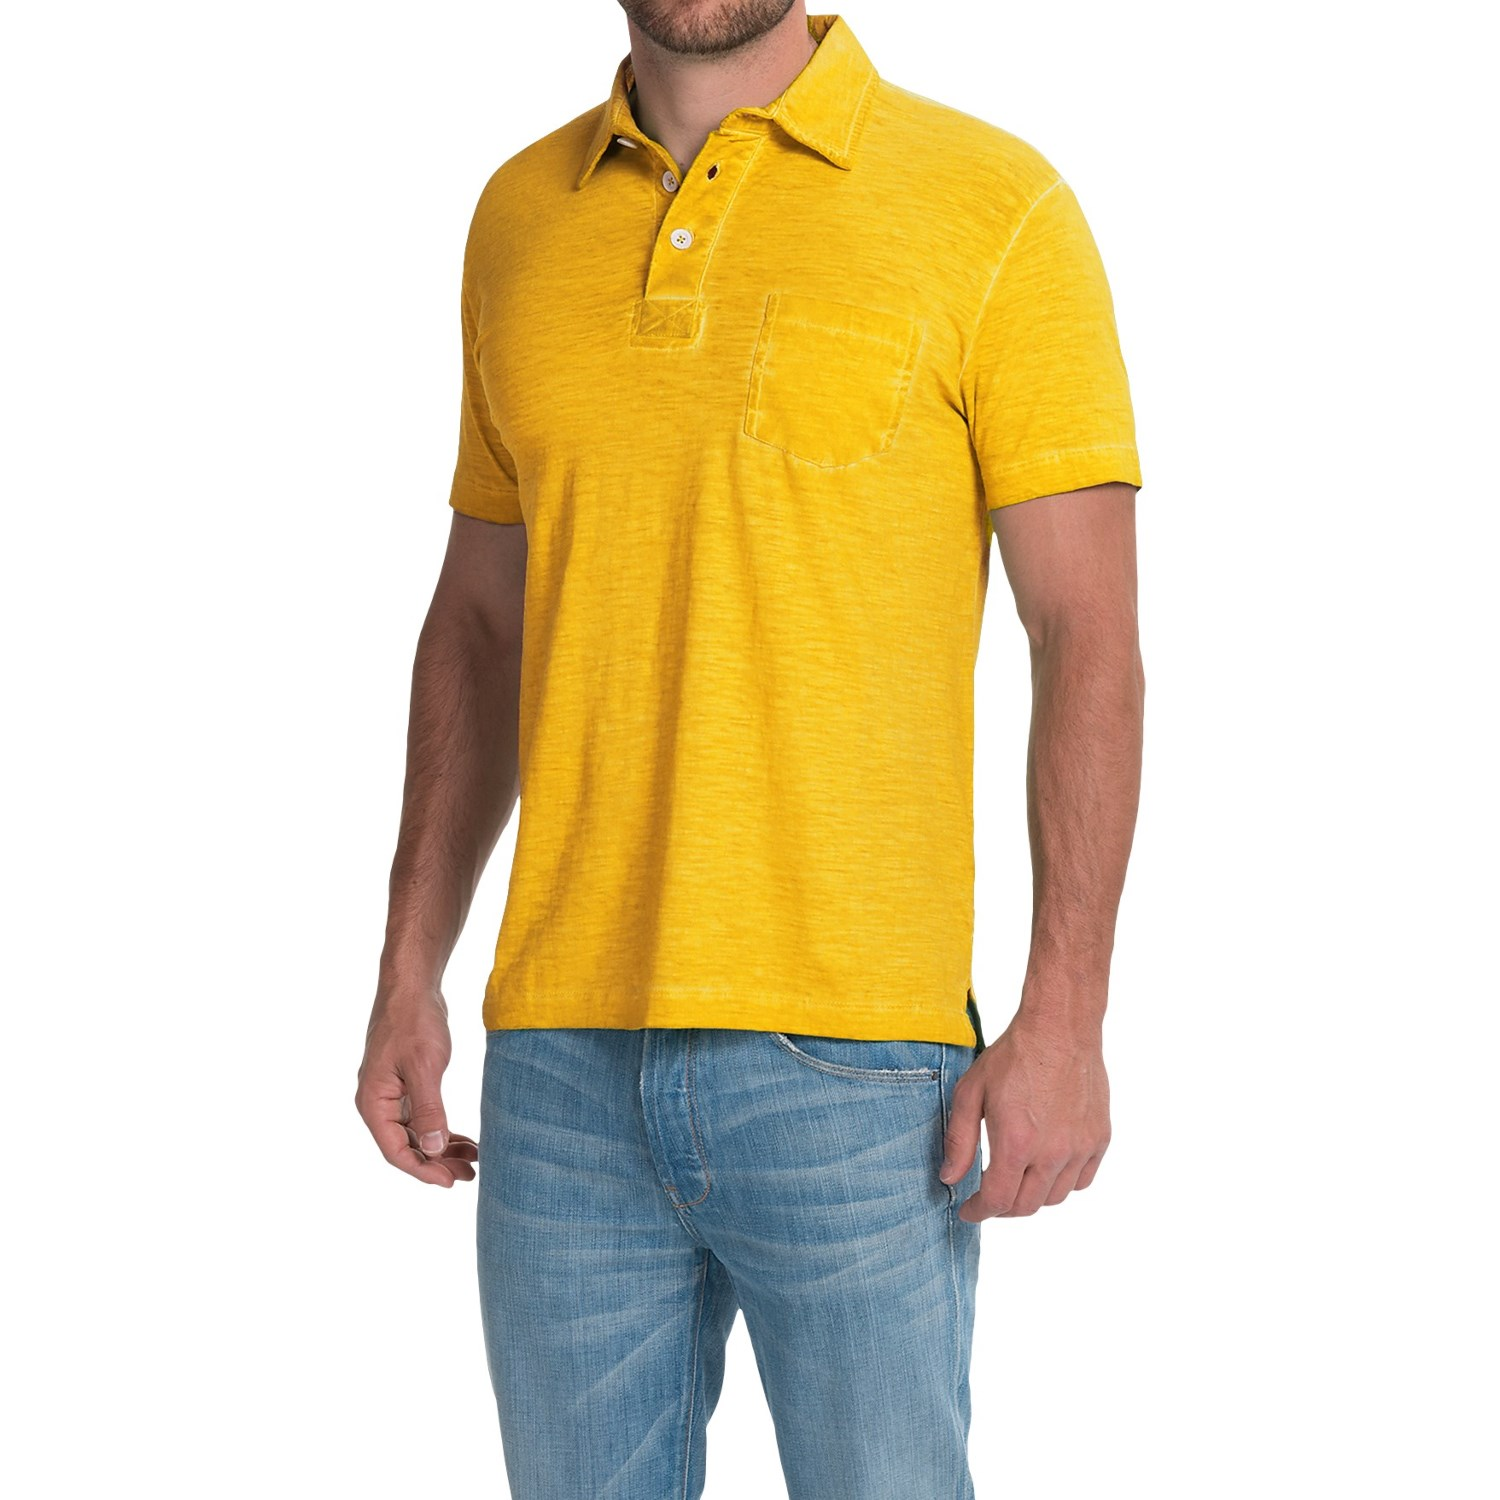 Vintage 1946 Garment Dyed Polo Shirt For Men Save 74